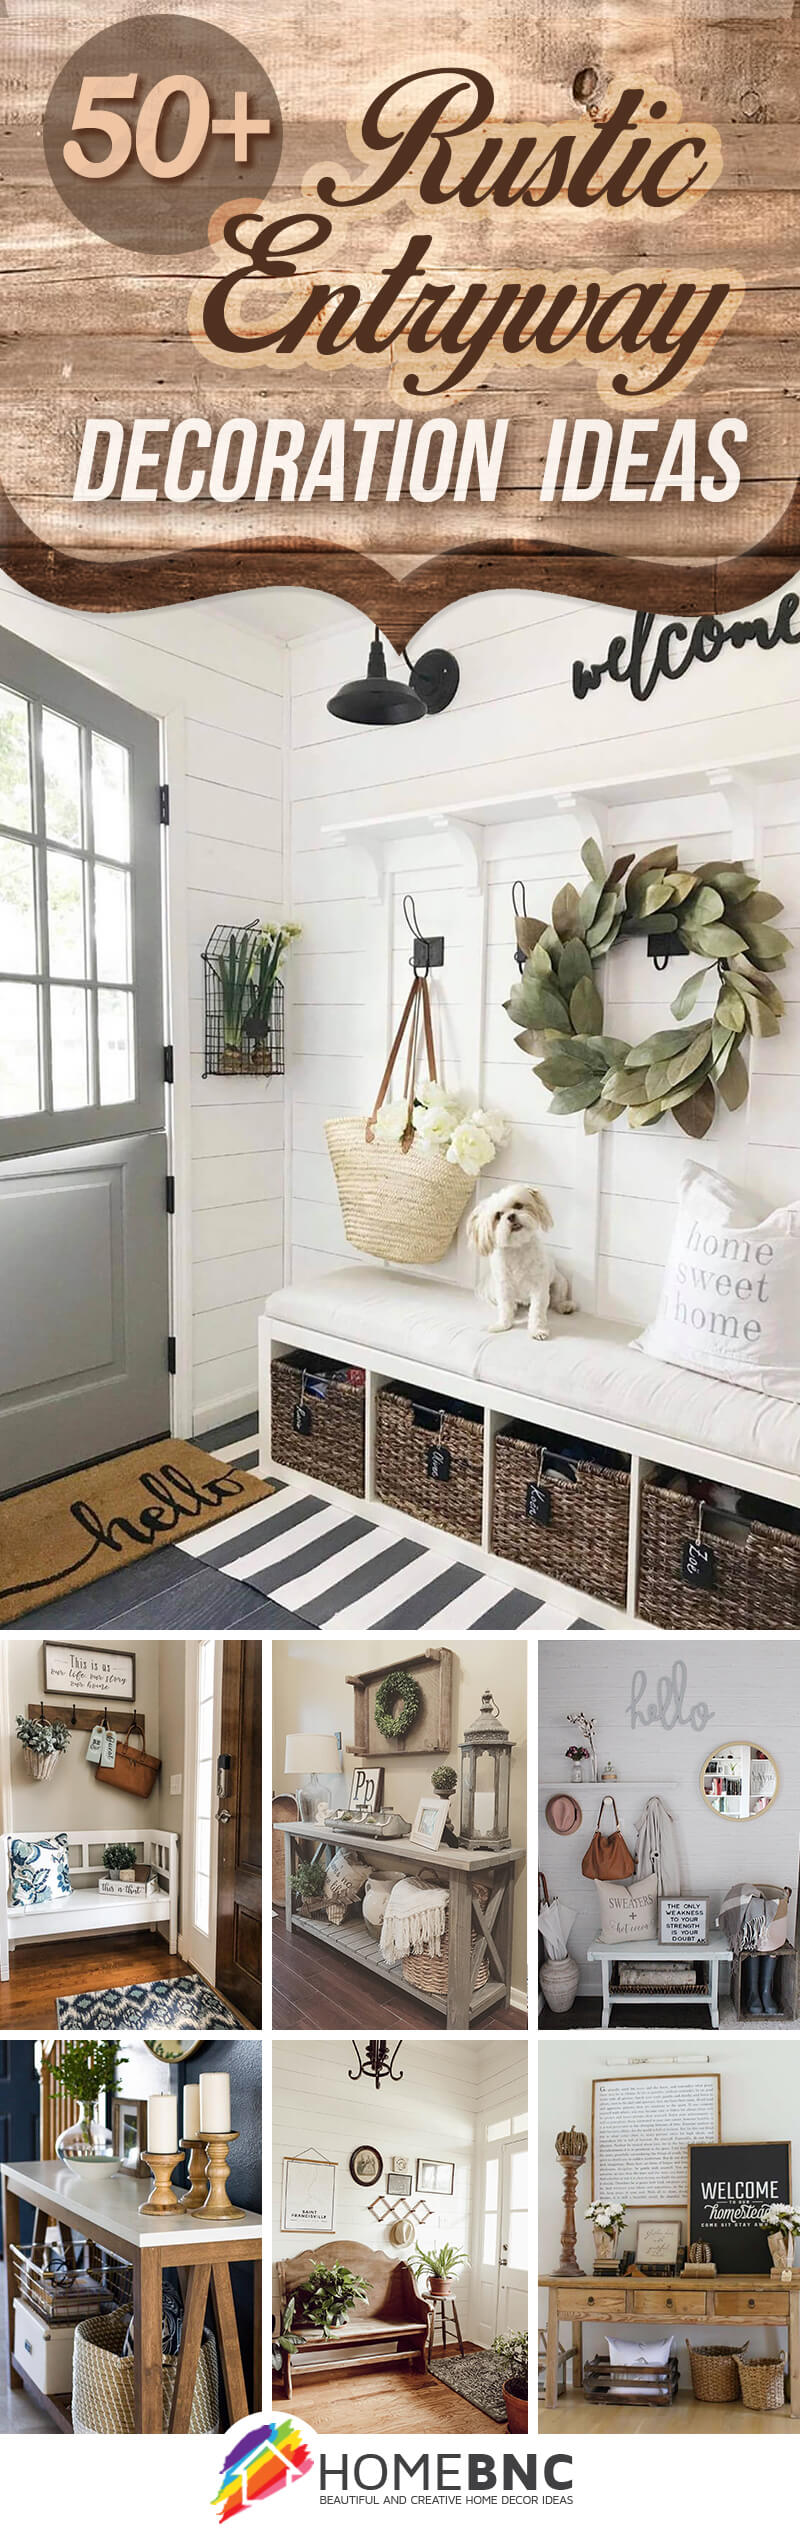 50 Best Rustic Entryway Decorating Ideas And Designs For 2021